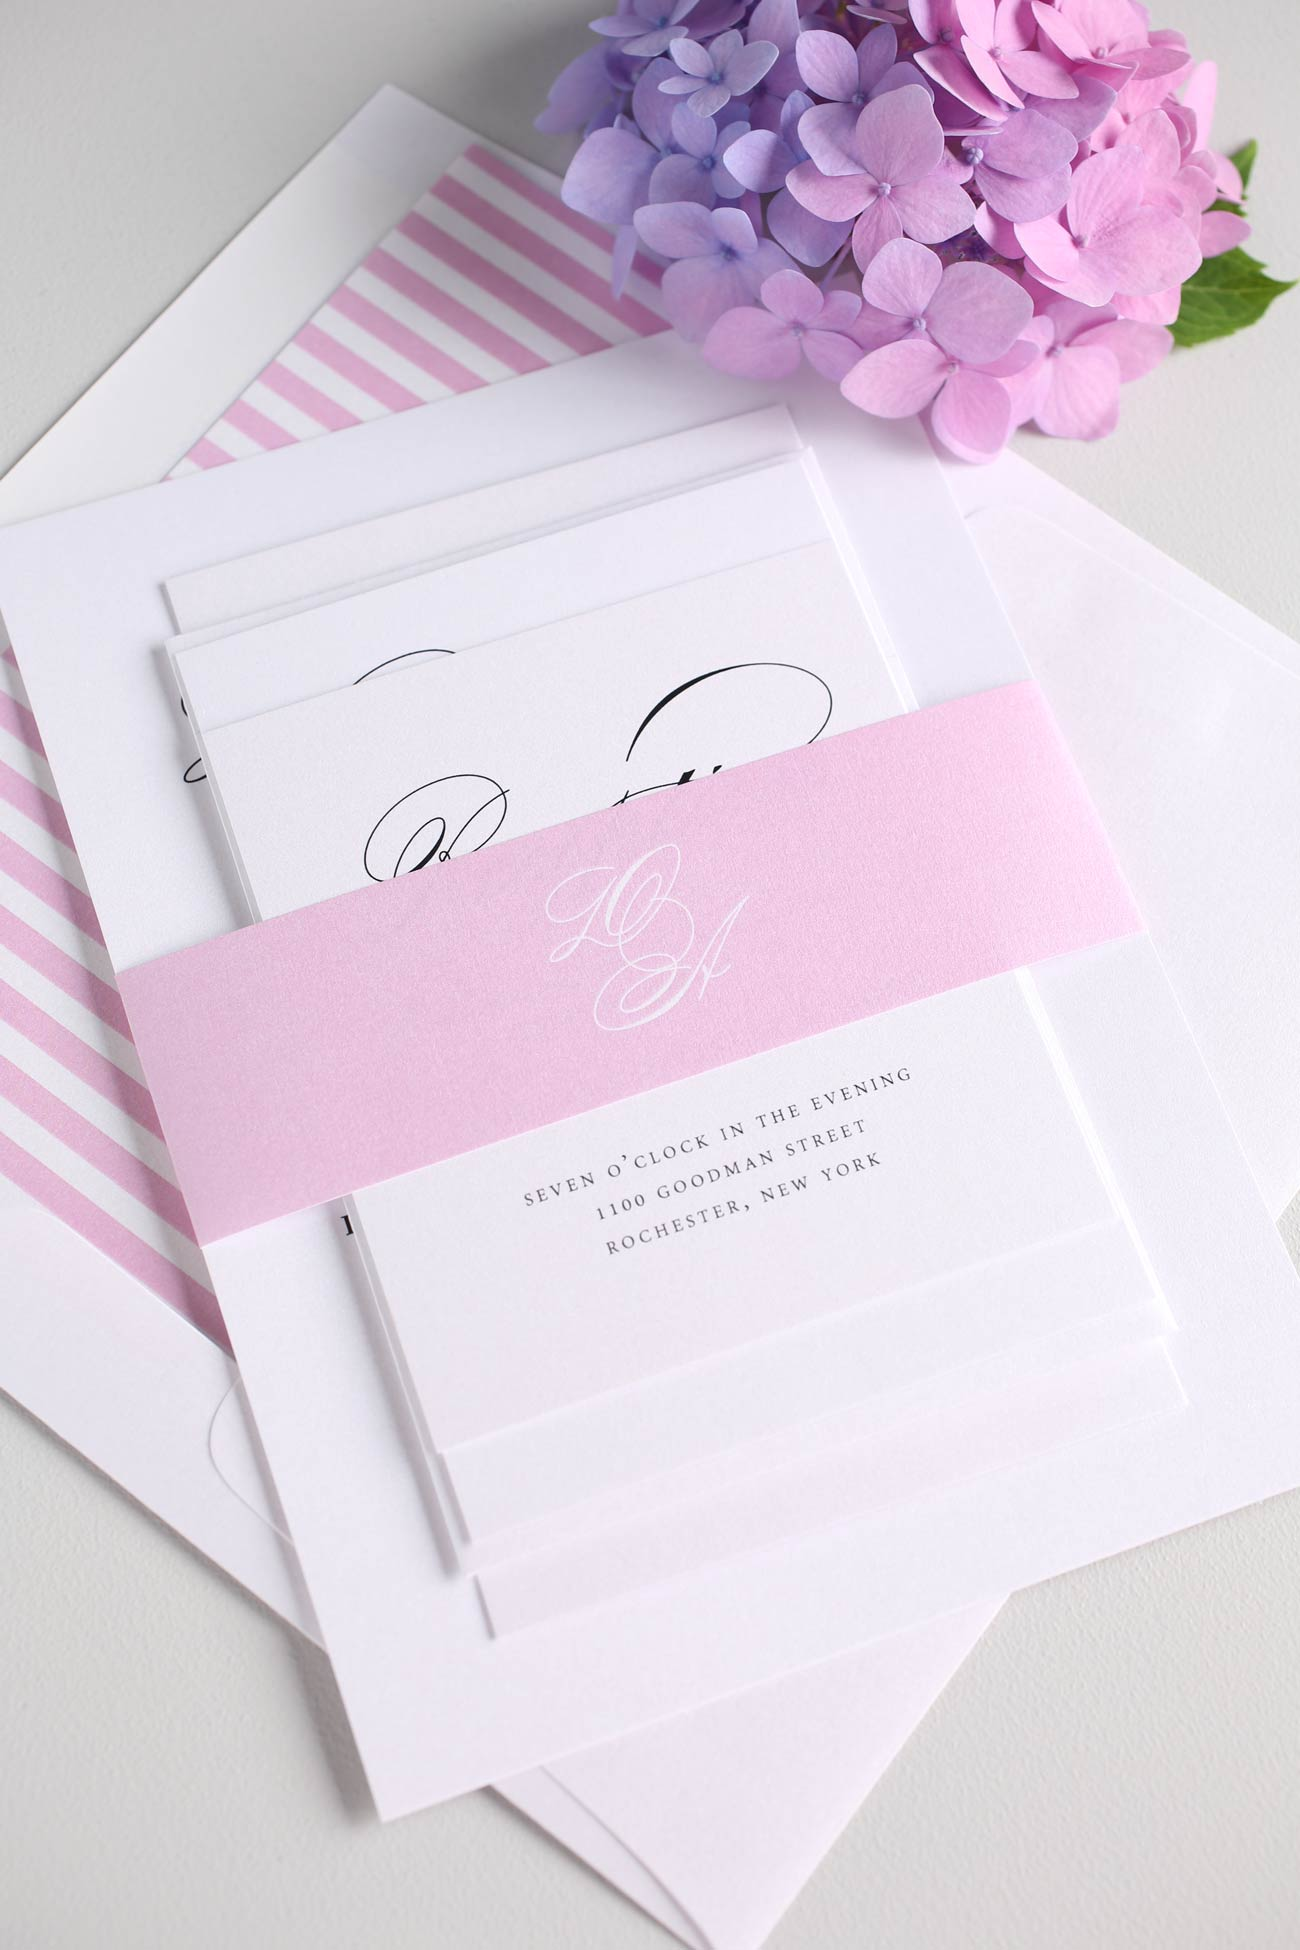 Blossom pink wedding invitations with stripe accents